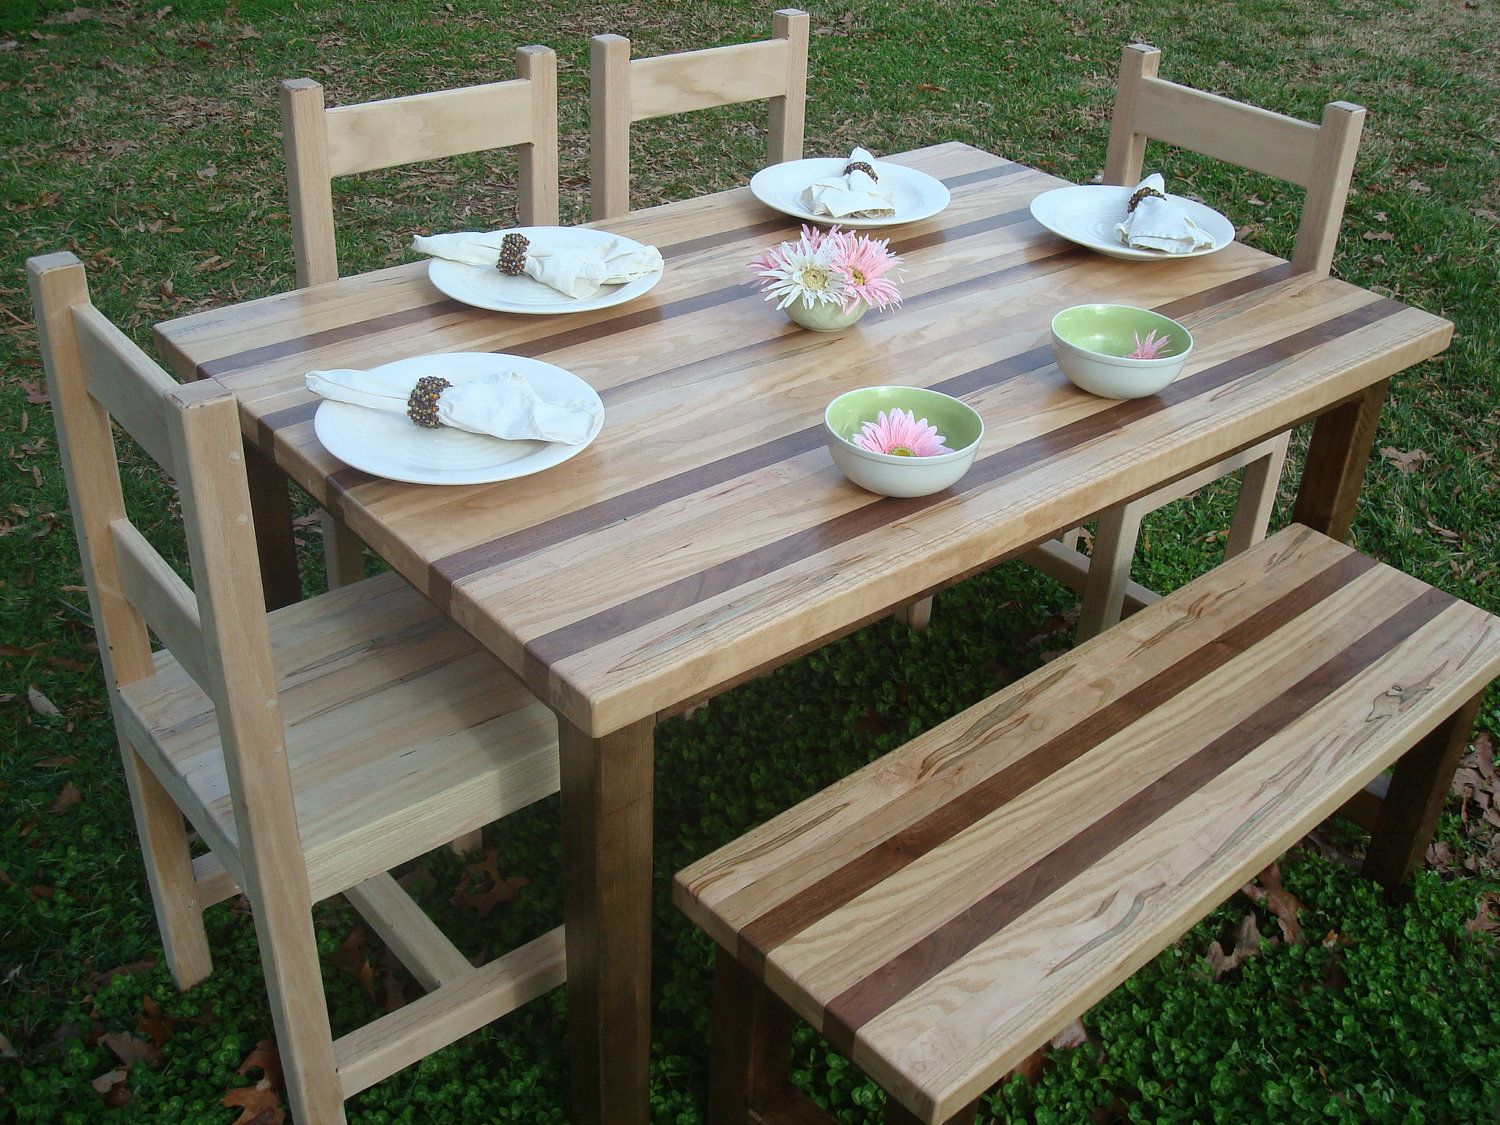 idea for walnut, purple heart, blue mahoe table. Dining Table  BenchReclaimed Wood . - Reclaimed Wood Outdoor Furniture Show Home Design